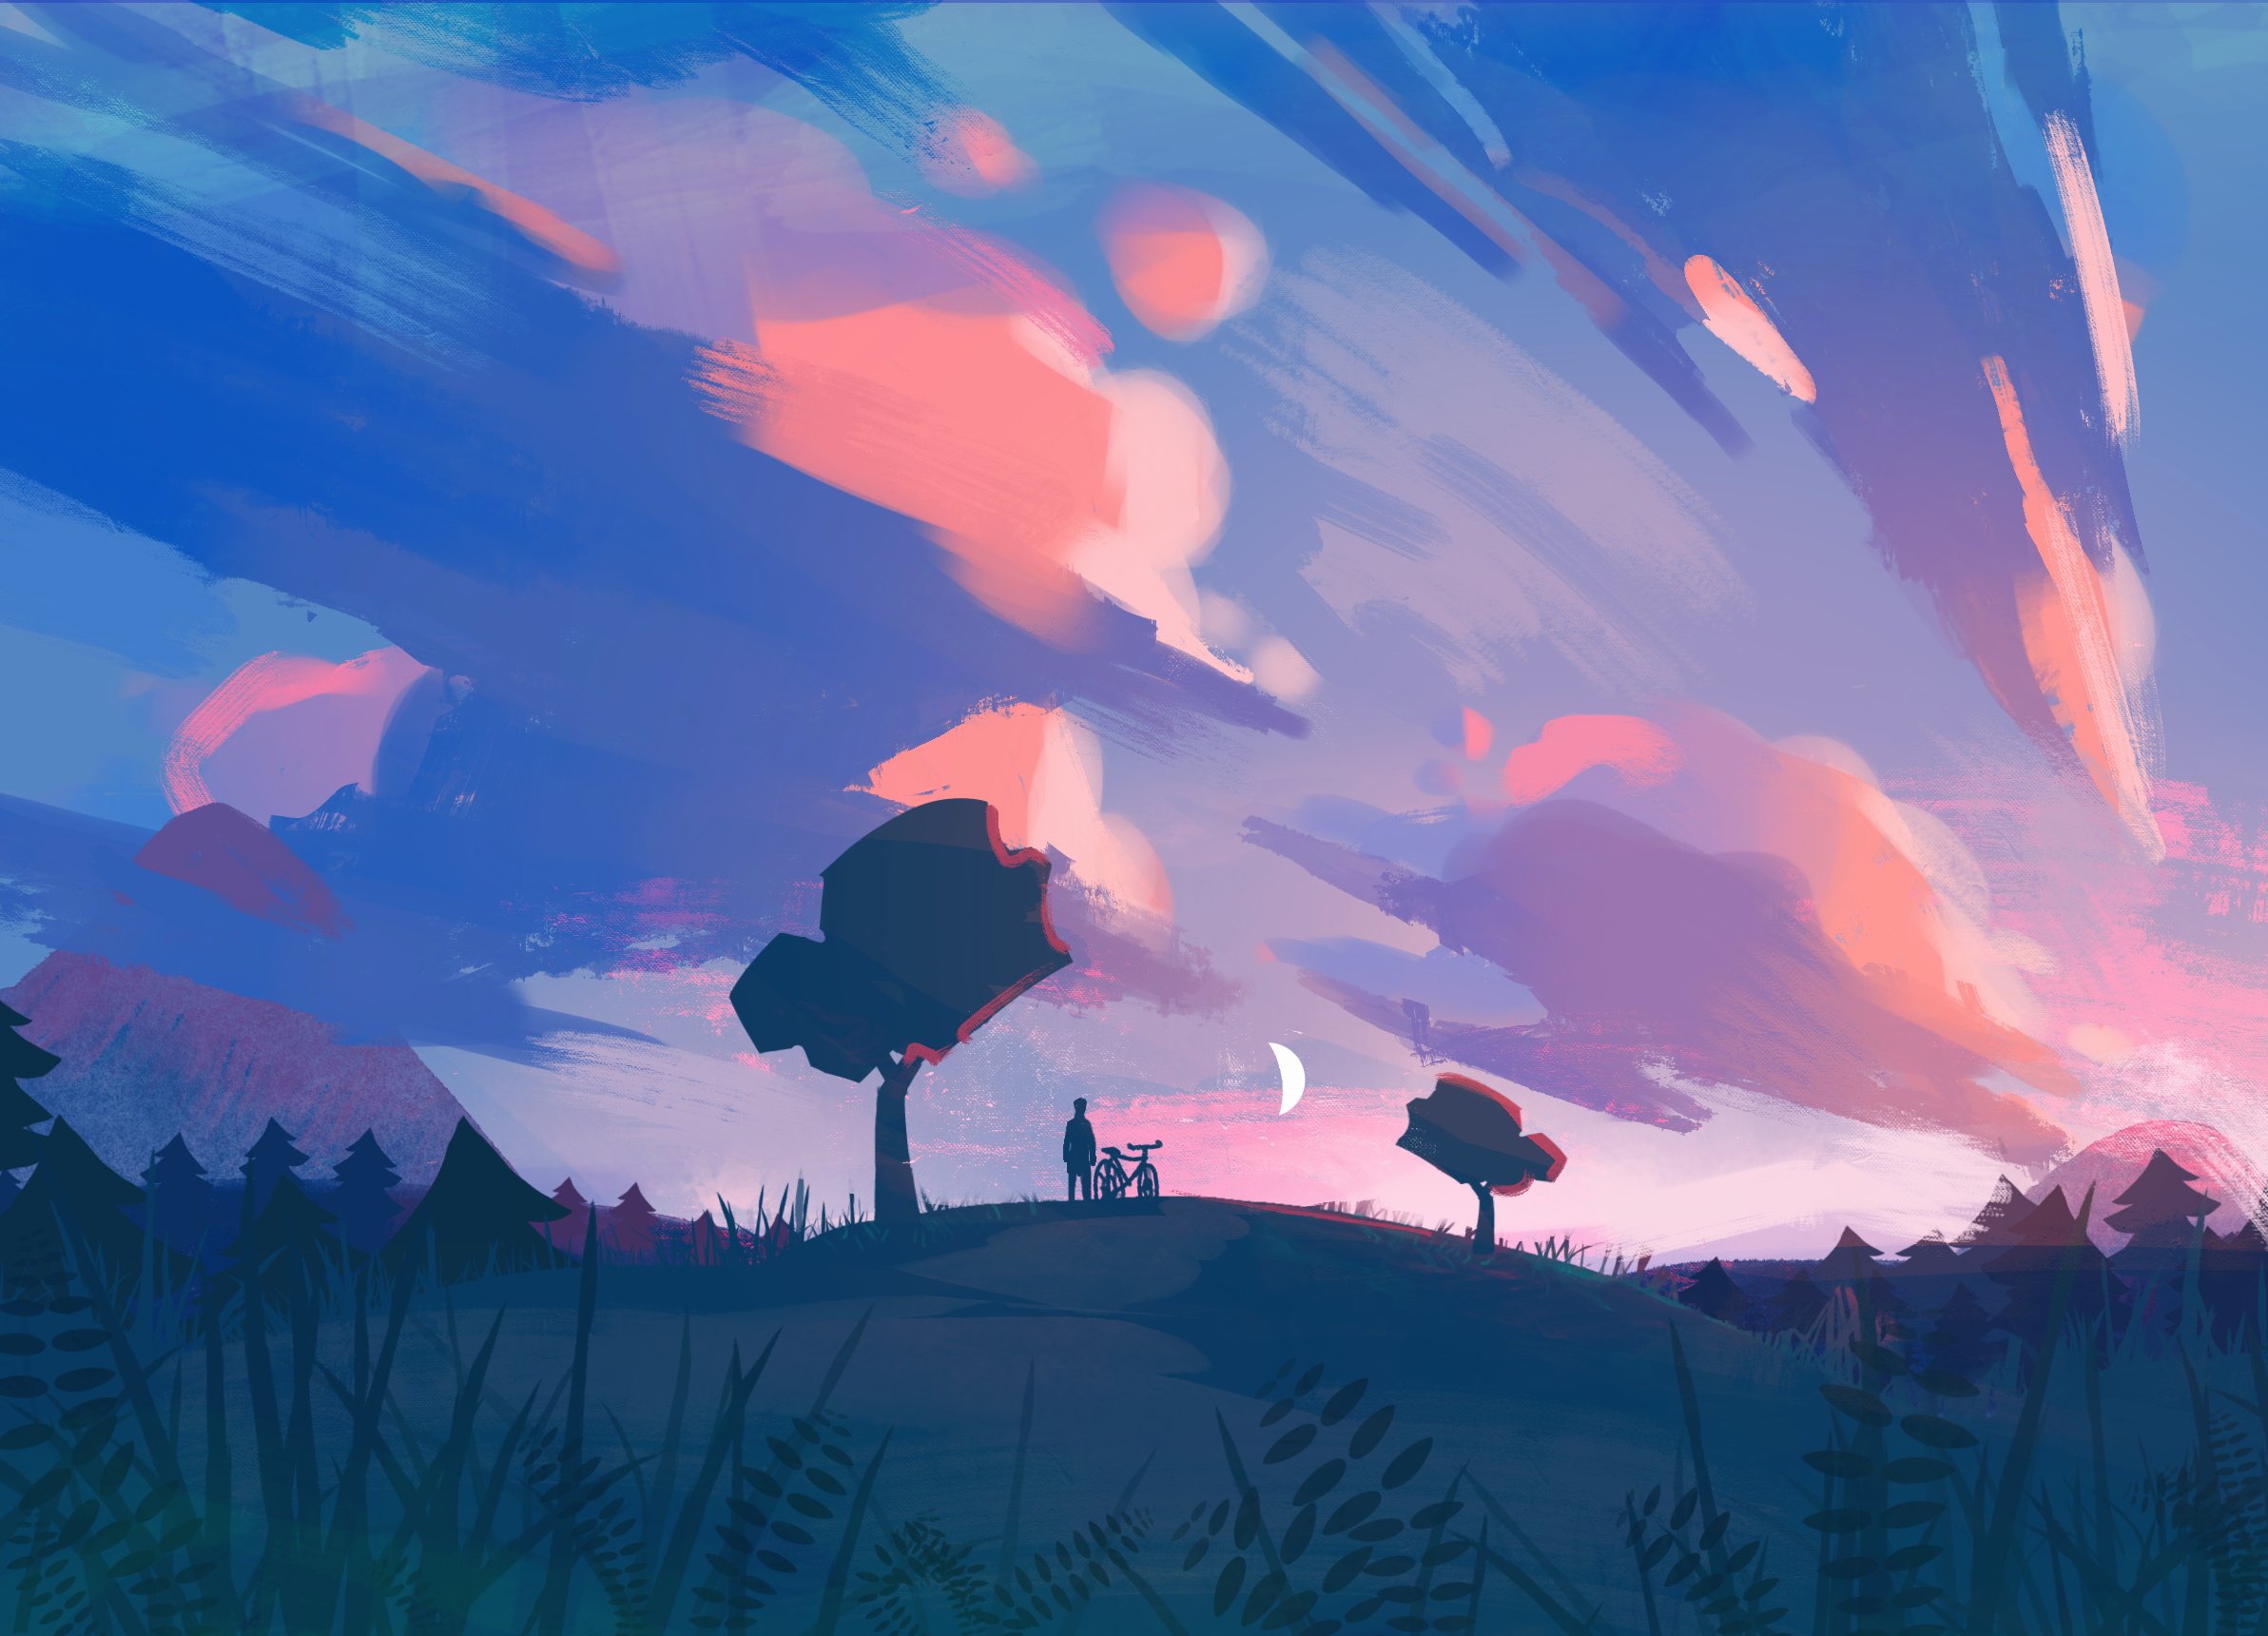 On the hilltop